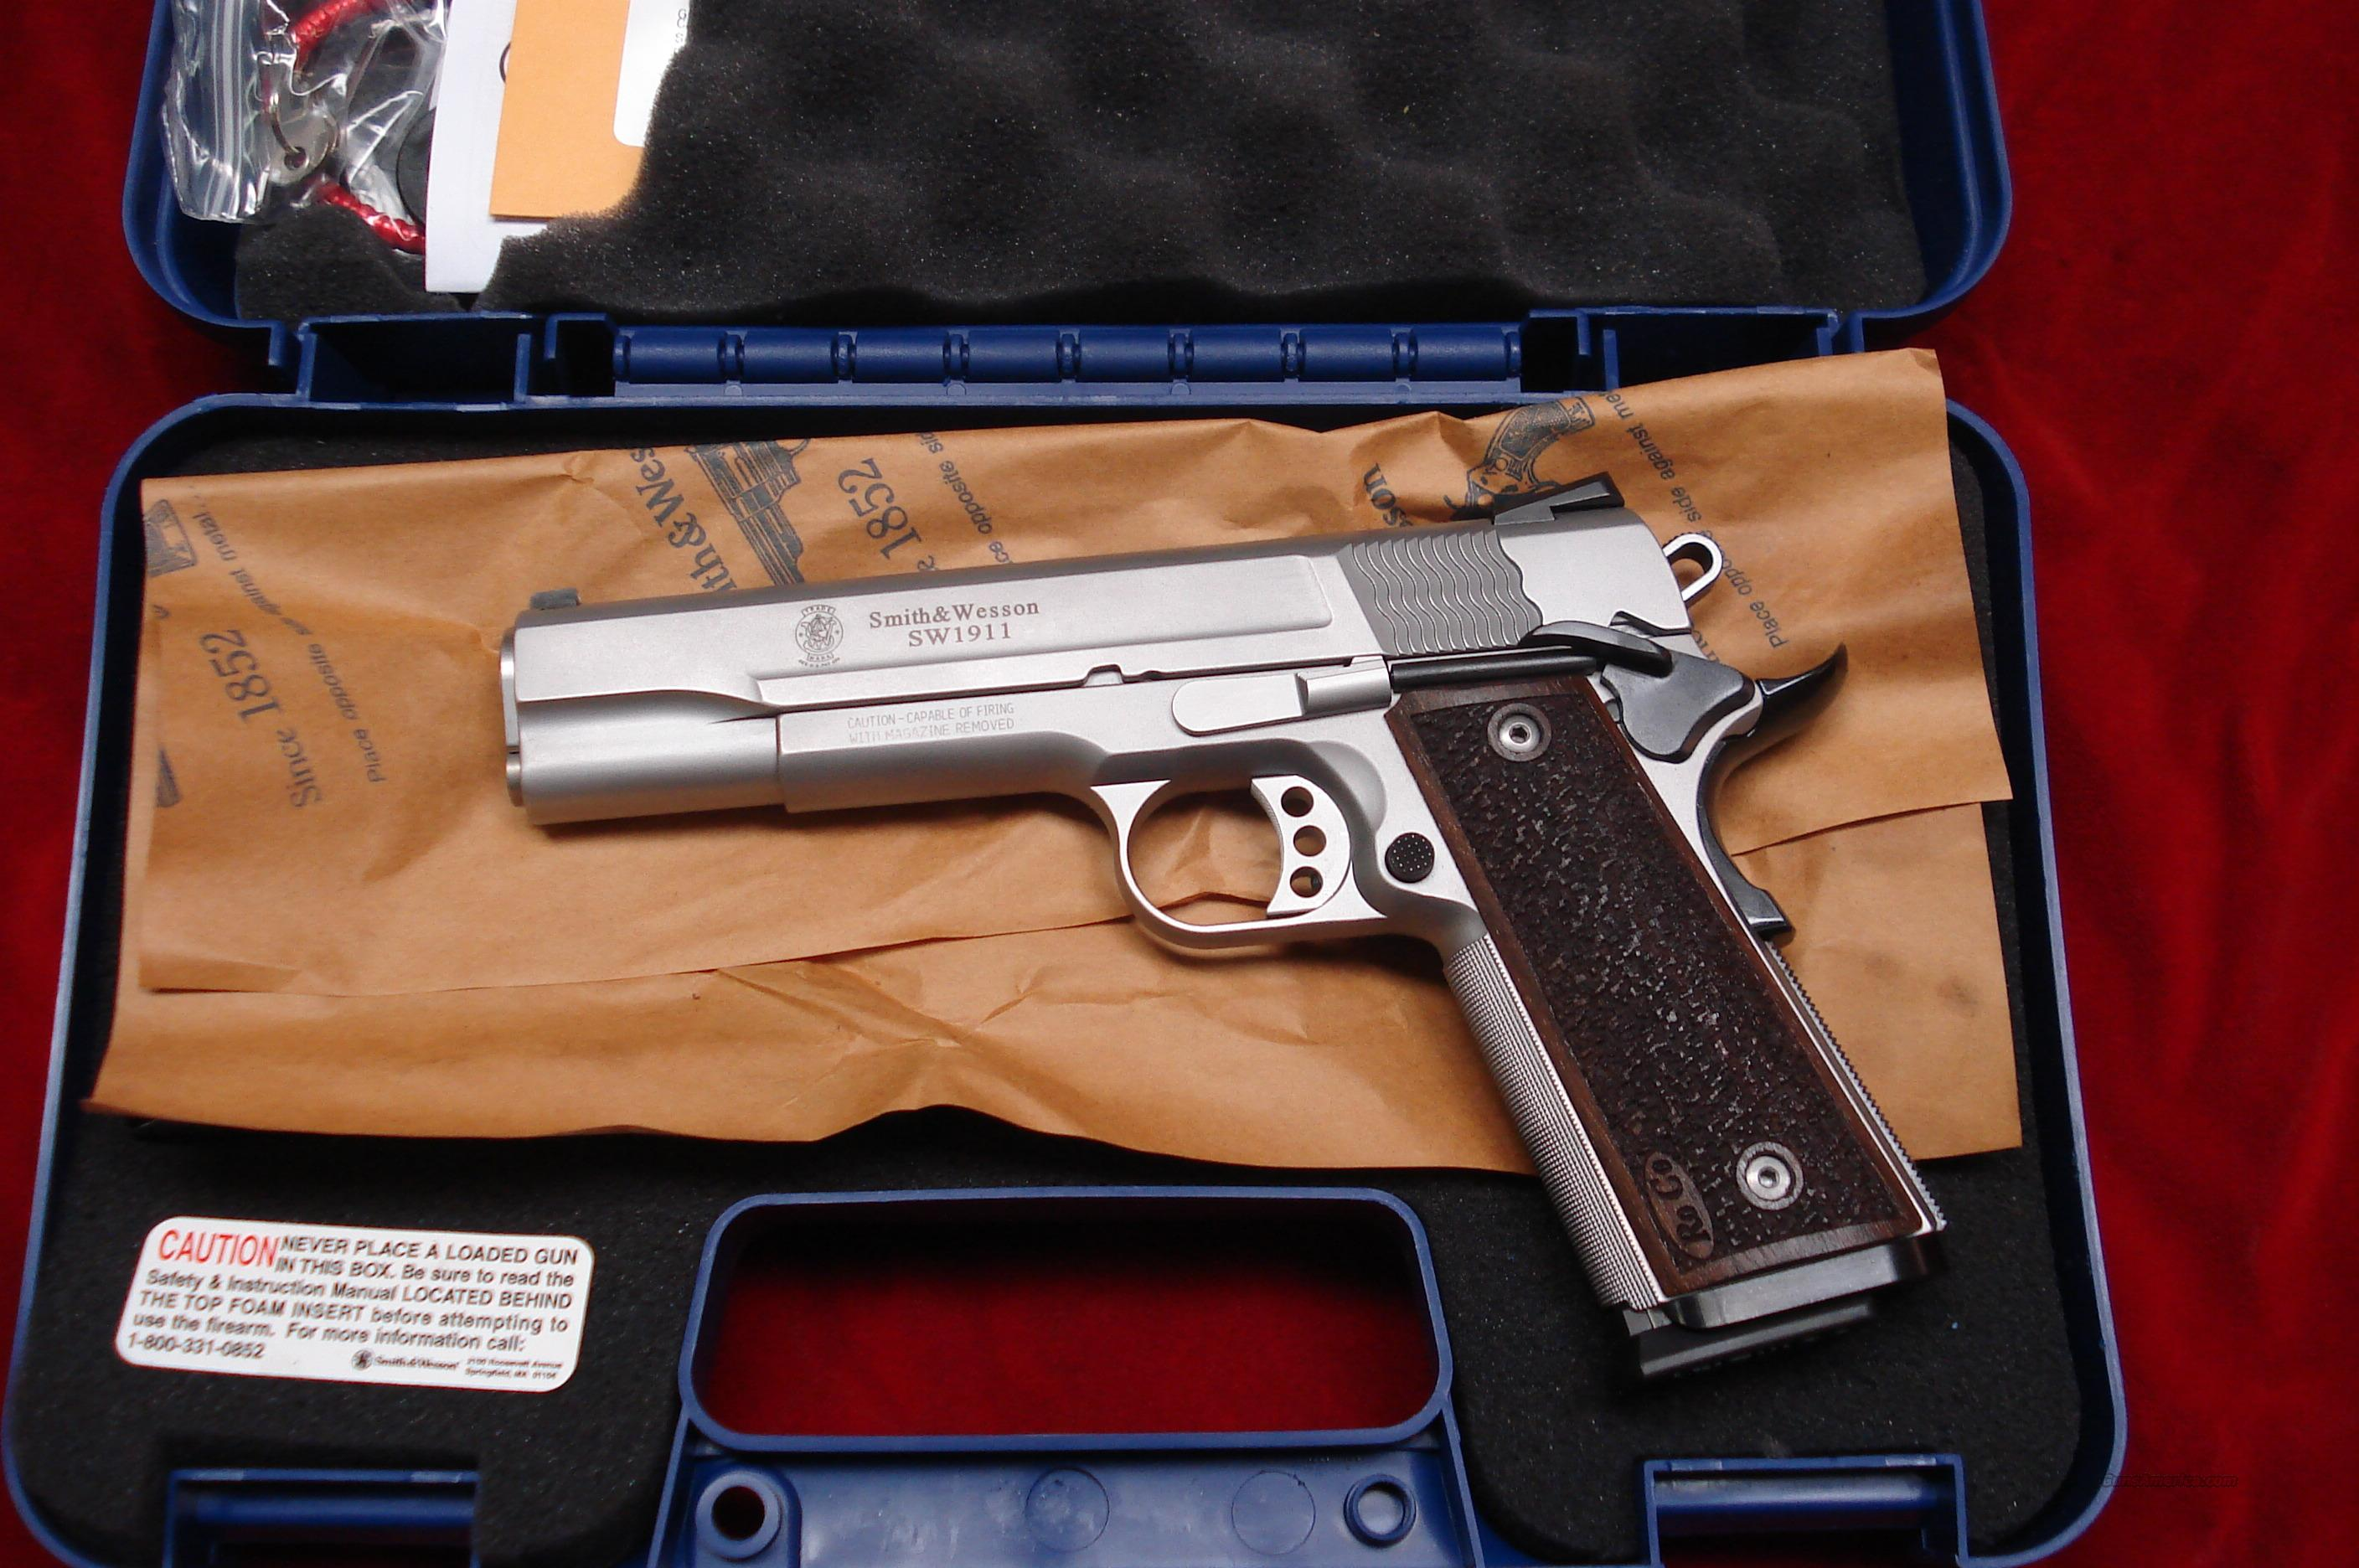 SMITH AND WESSON SW1911 PRO SERIES 9MM WITH LOW PROFILE SIGHTS NEW  Guns > Pistols > Smith & Wesson Pistols - Autos > Steel Frame